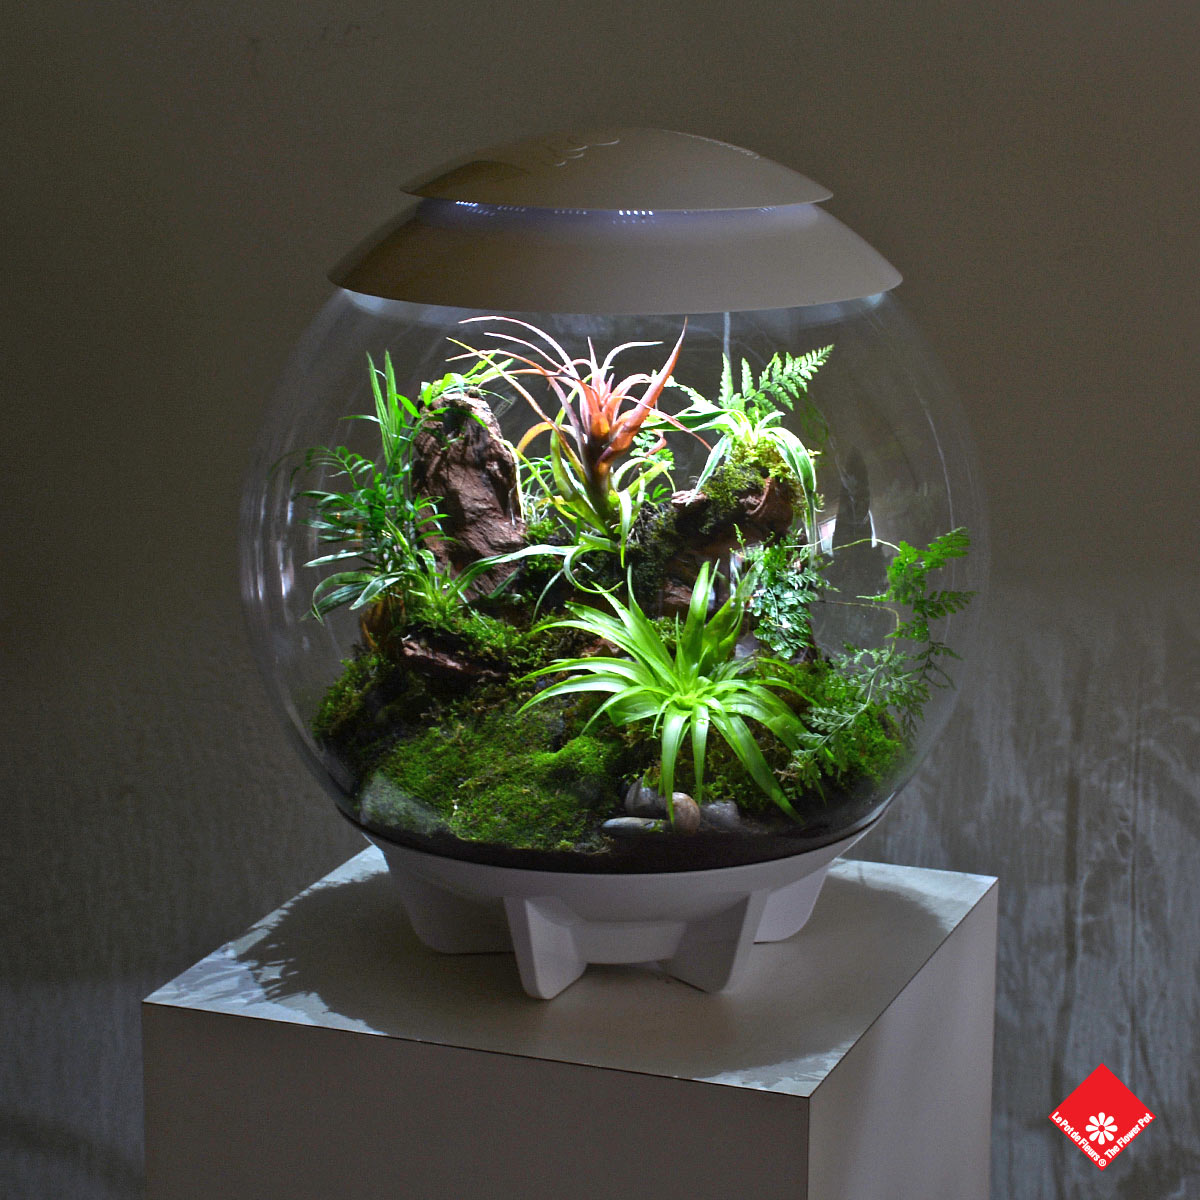 Wake up to nature with this soothing green globe on your bedside table. Fish are too high maintenance, get a terrarium from The Flower Pot instead.